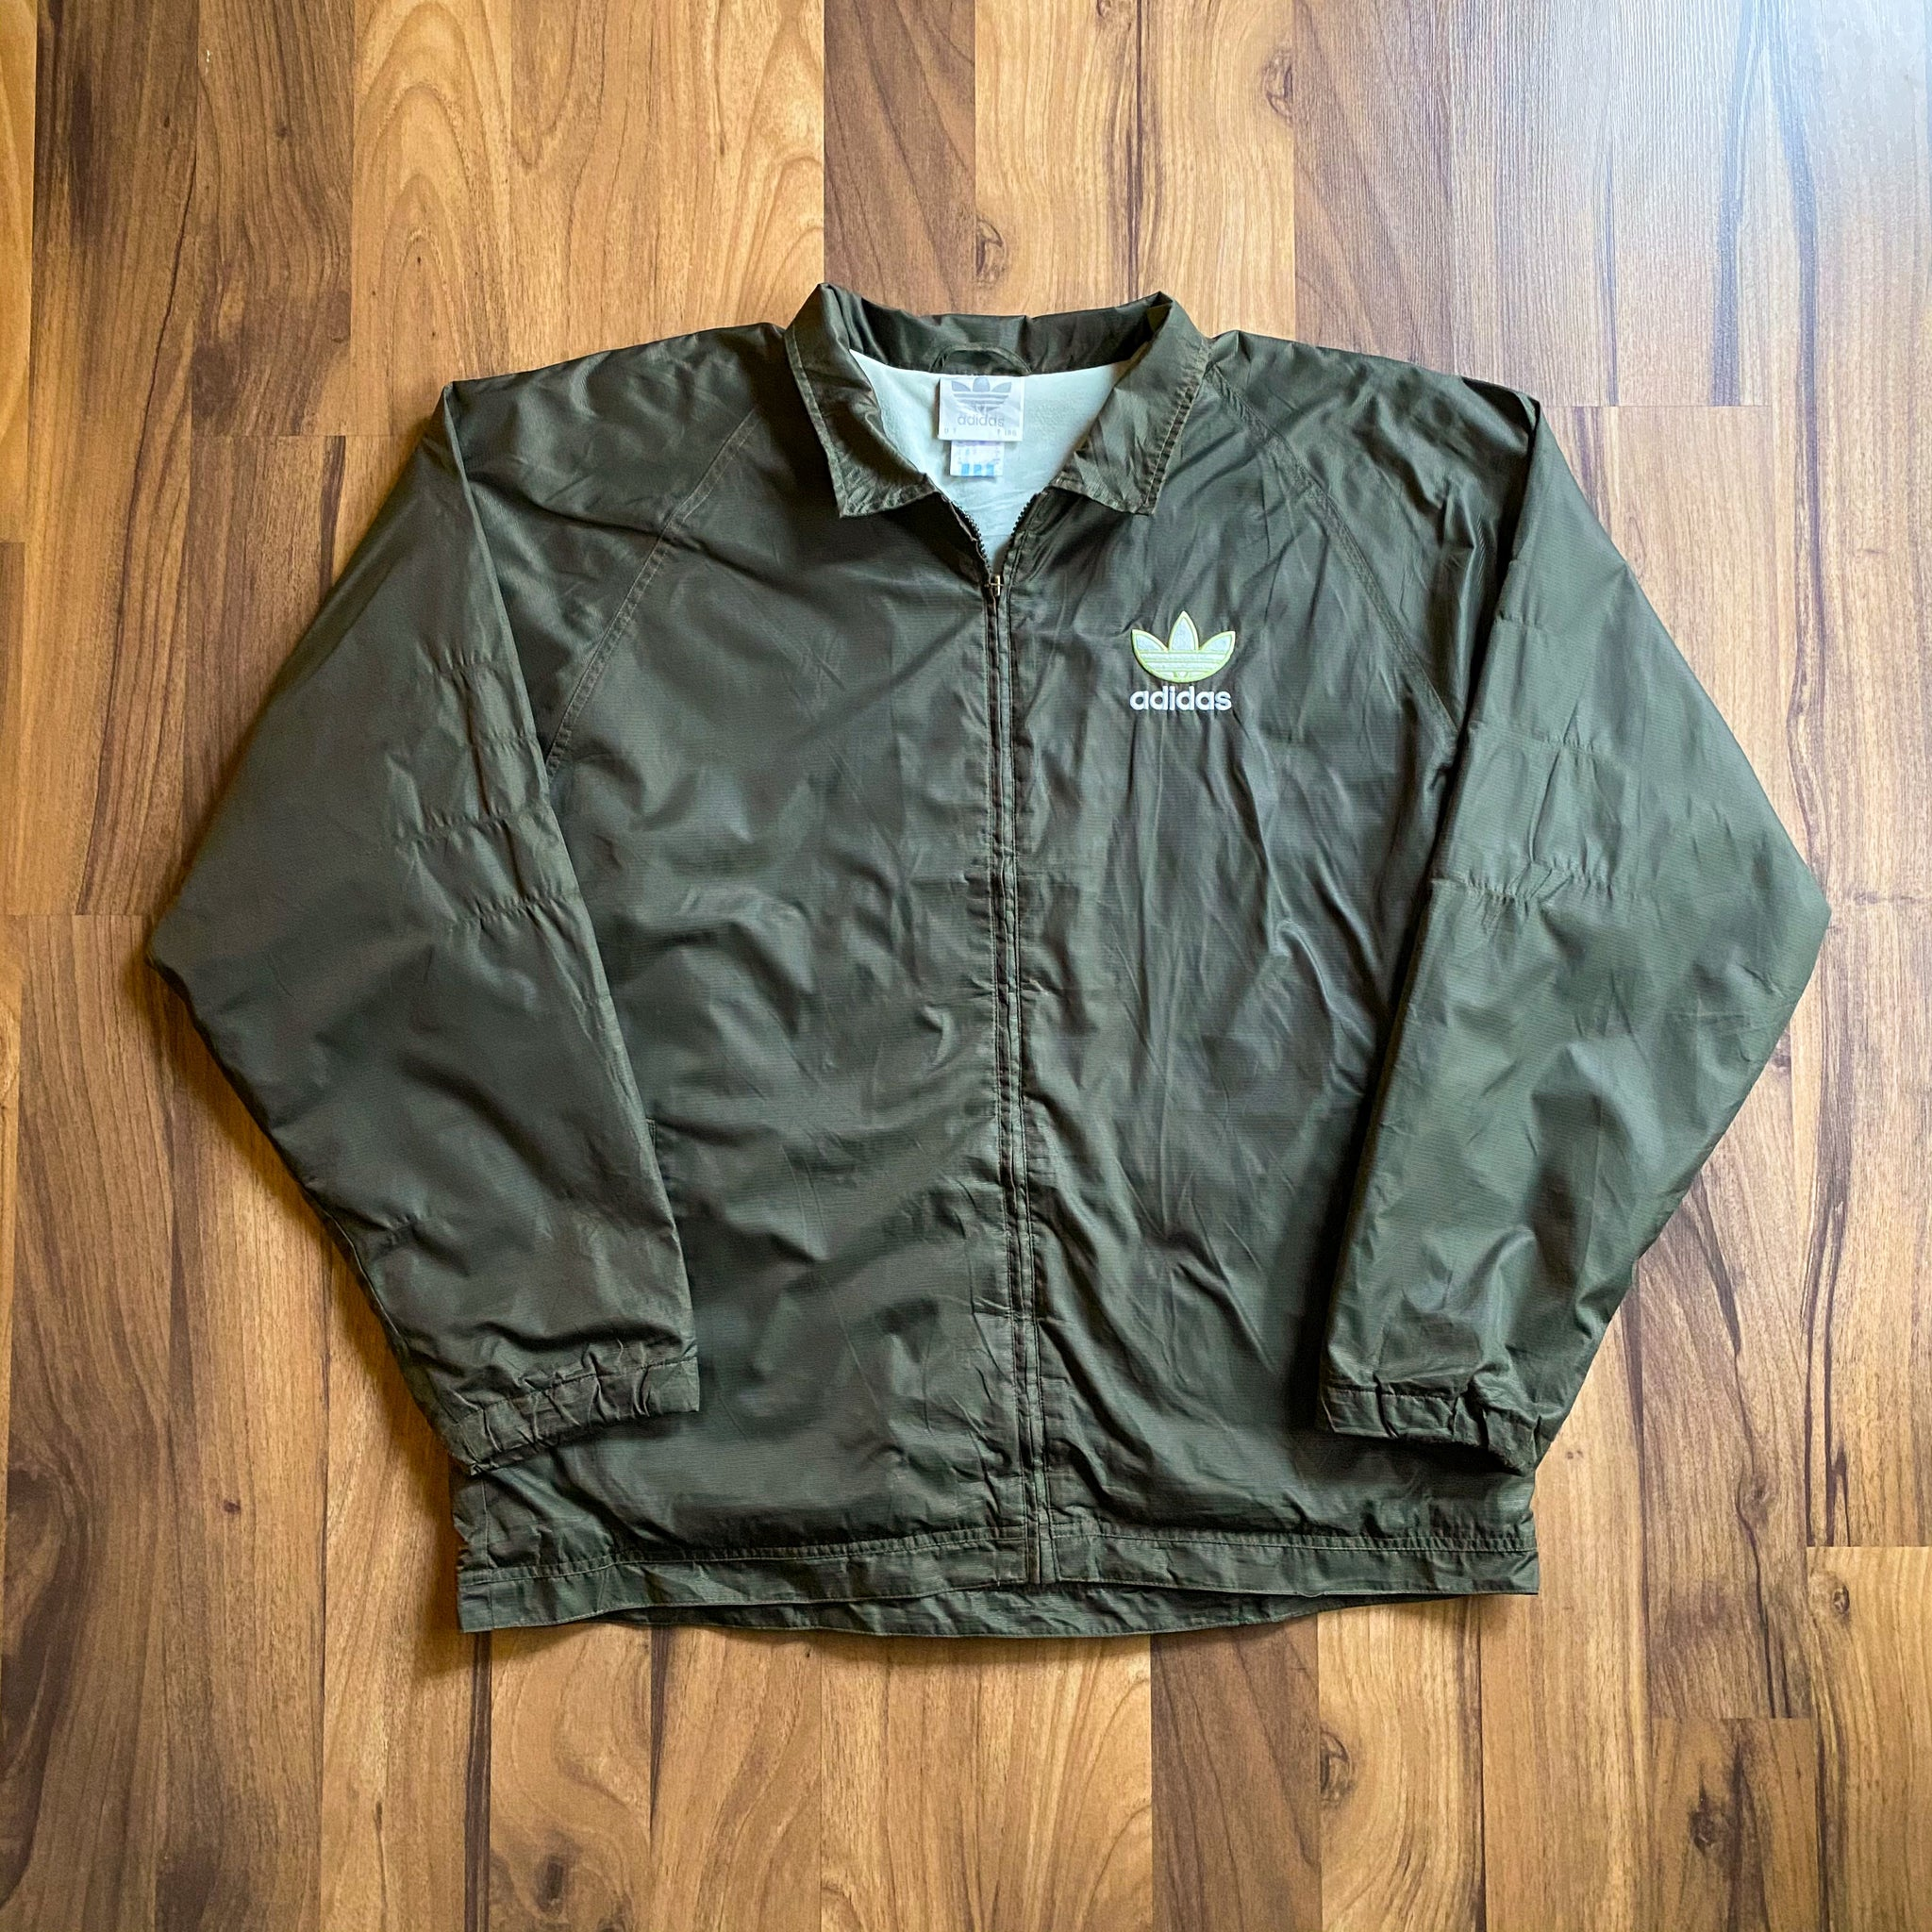 VINTAGE ADIDAS TREFOIL EMBROIDERED FULL-ZIP WINDBREAKER JACKET